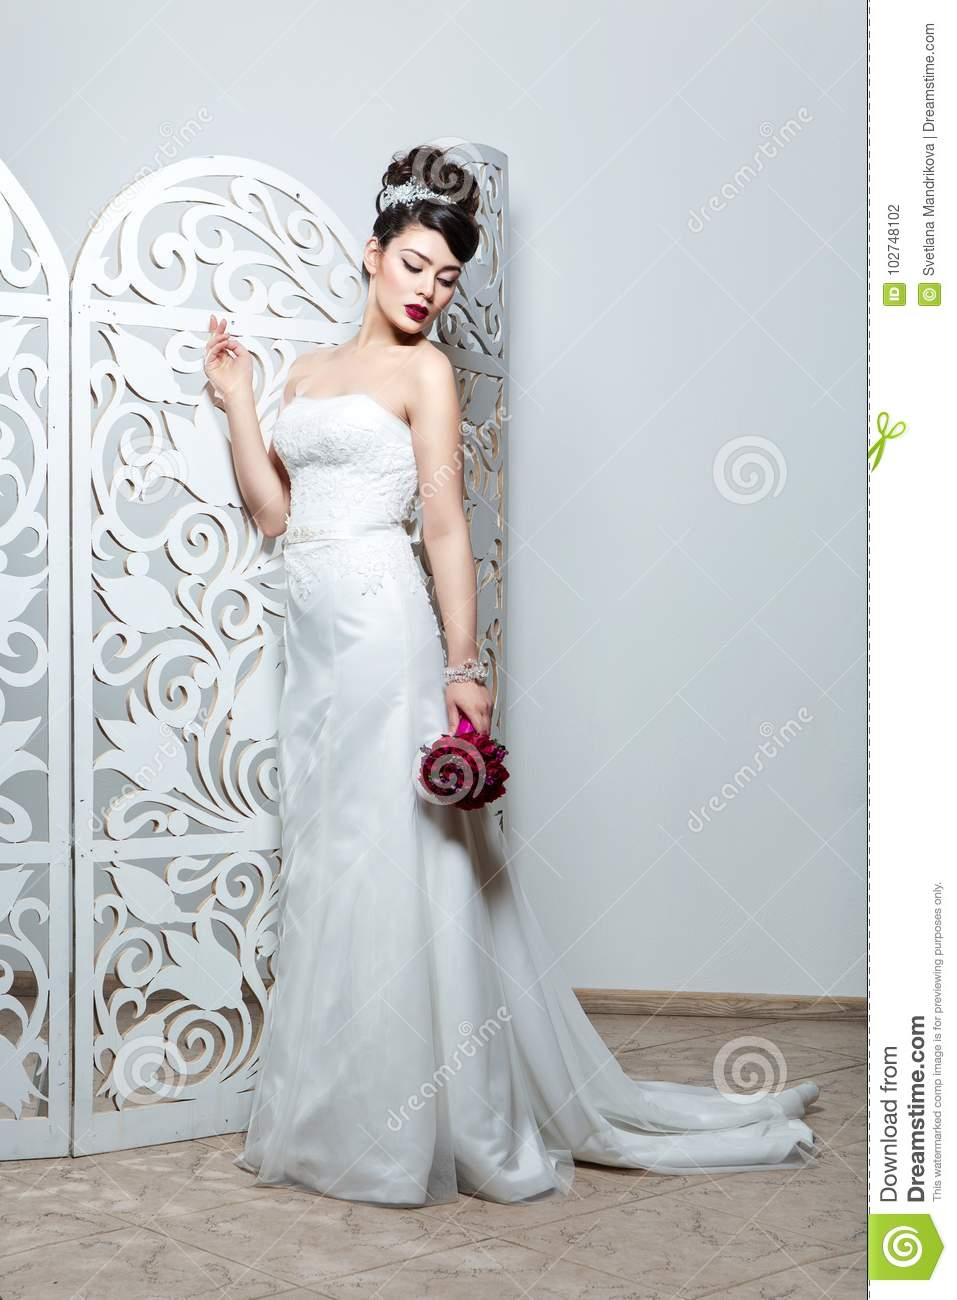 Beautiful Girl In Wedding Gown Stock Photo - Image of decolette ...